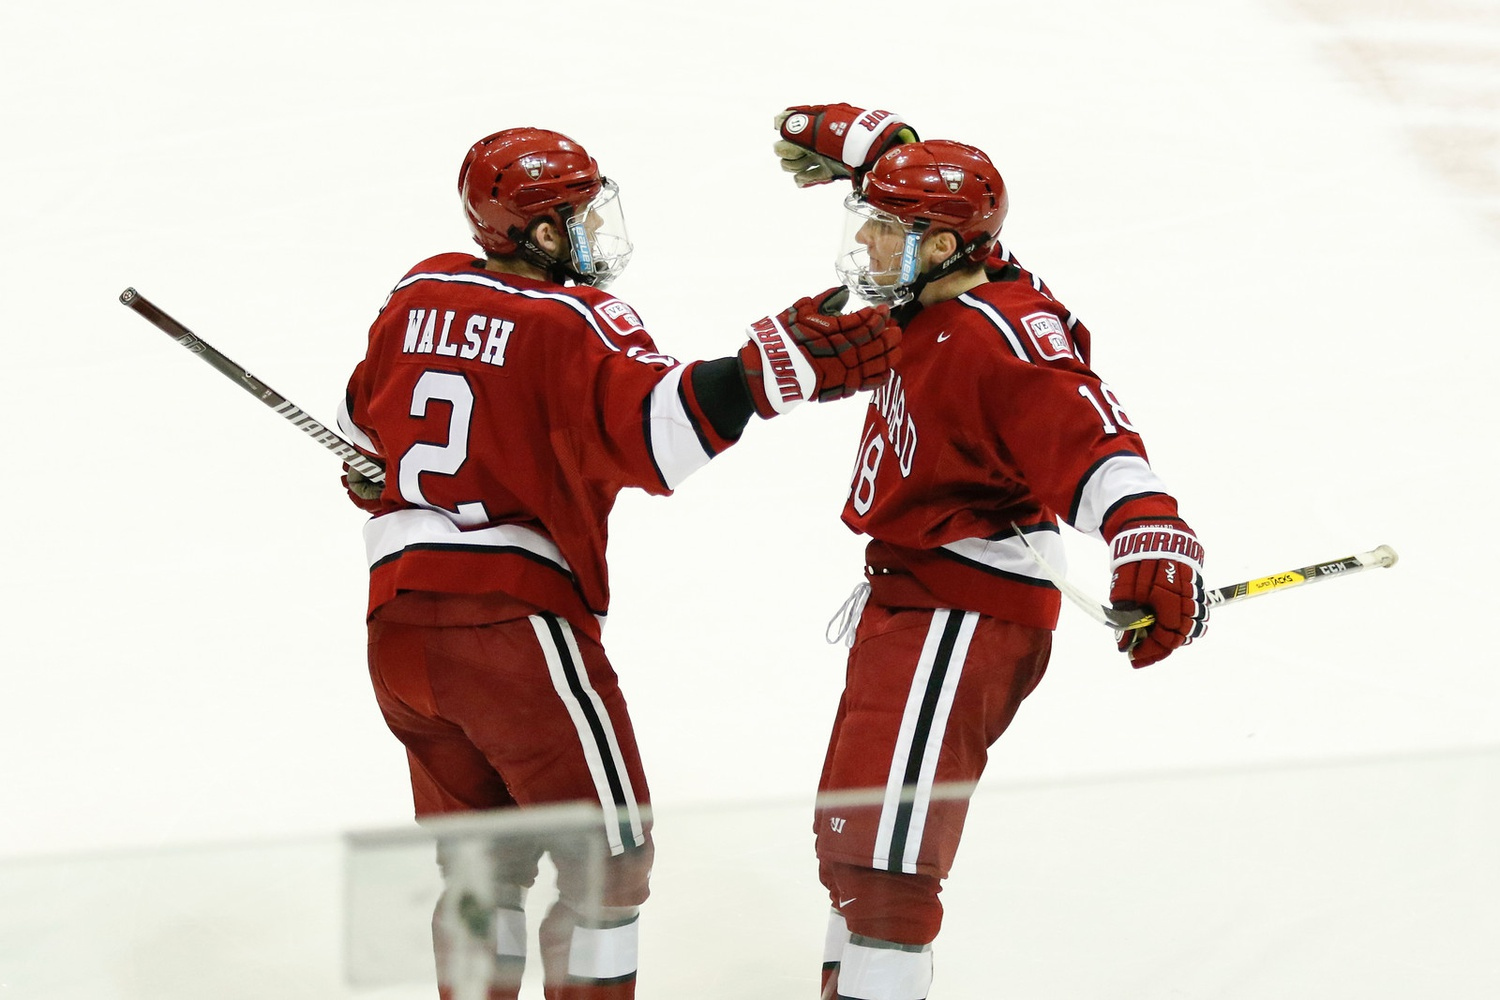 Sophomore defenseman Reilly Walsh nabbed another powerplay one-timer on Friday, displaying the Crimson's man-up prowess alongside junior blue-liner Adam Fox.